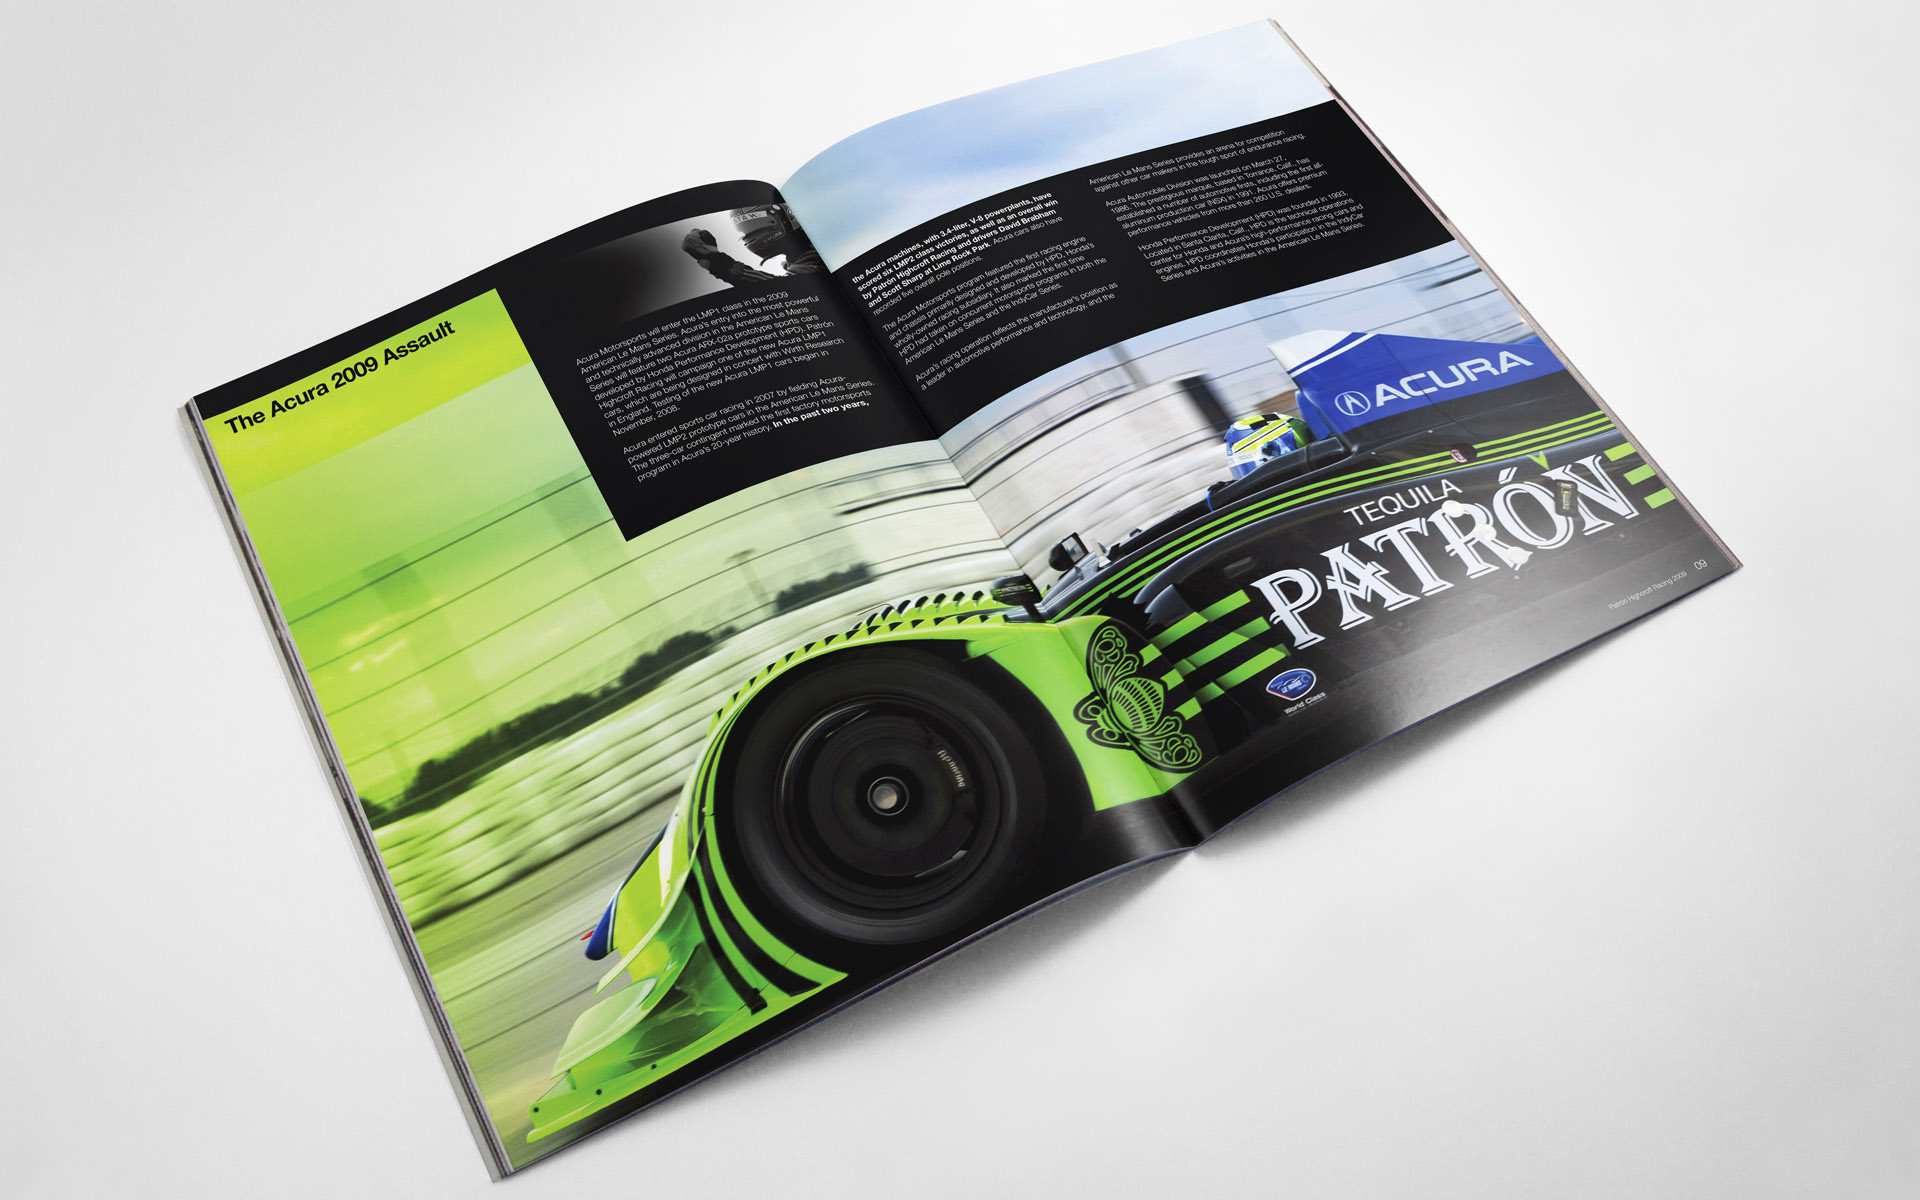 2009 Pátron Highcroft Racing Media Kit